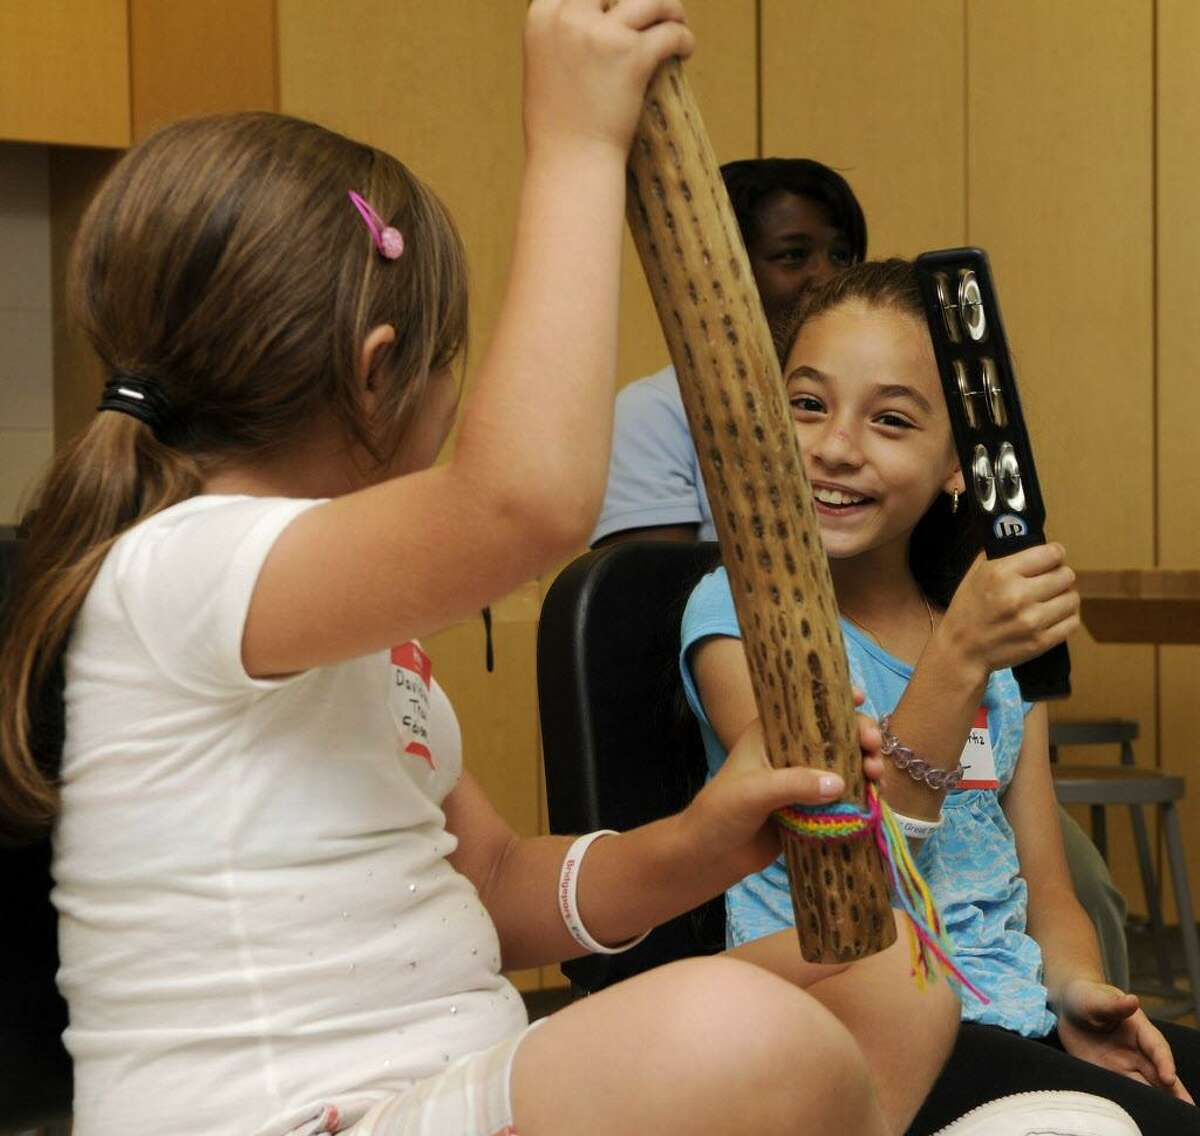 Davidianna Tracy (left) and Jessica Ortiz enjoy a music presentation at the Jettie Tisdale School in Bridgeport, CT on Friday August 20, 2010. Bridgeport schoolchildren with perfect attendance were treated to a morning full of fun.